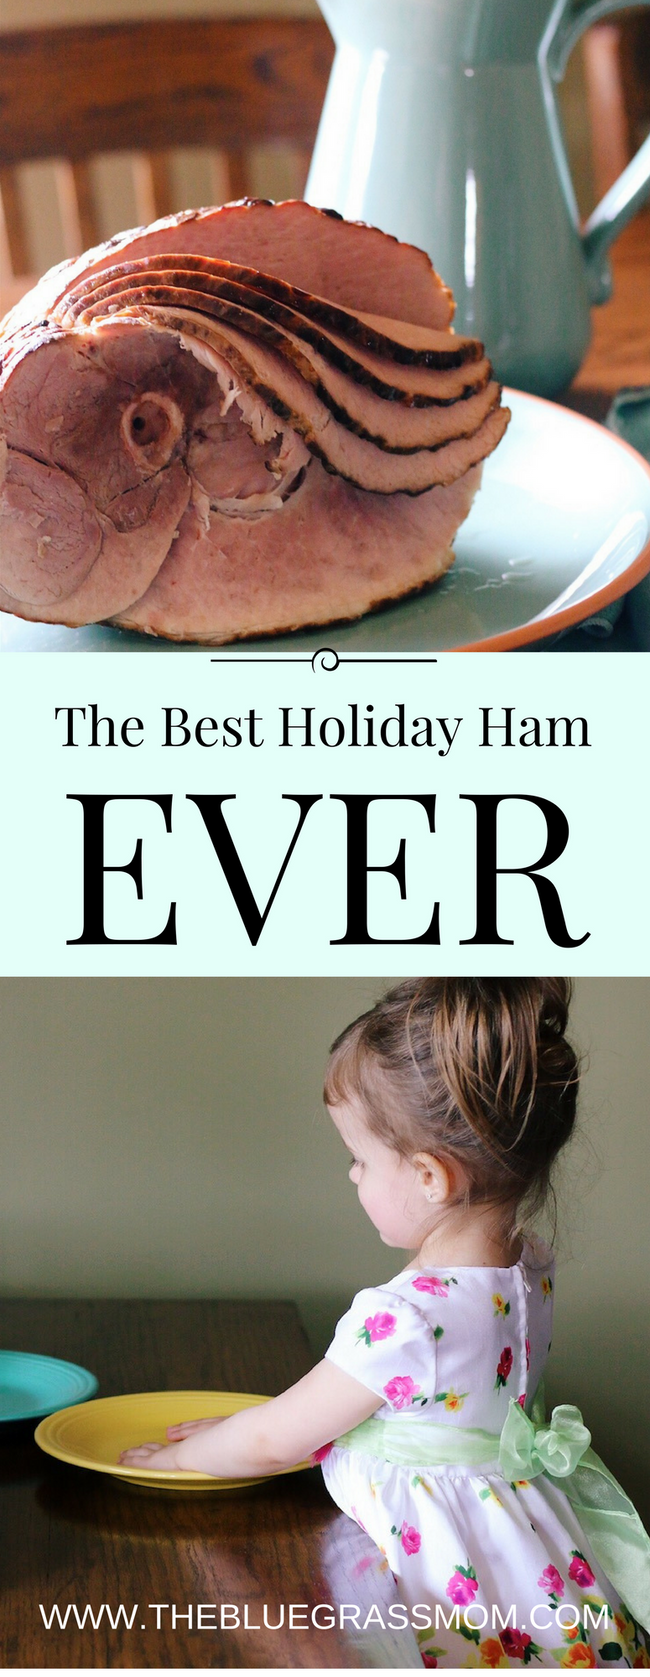 The Best Holiday Ham with Curemaster Reserve